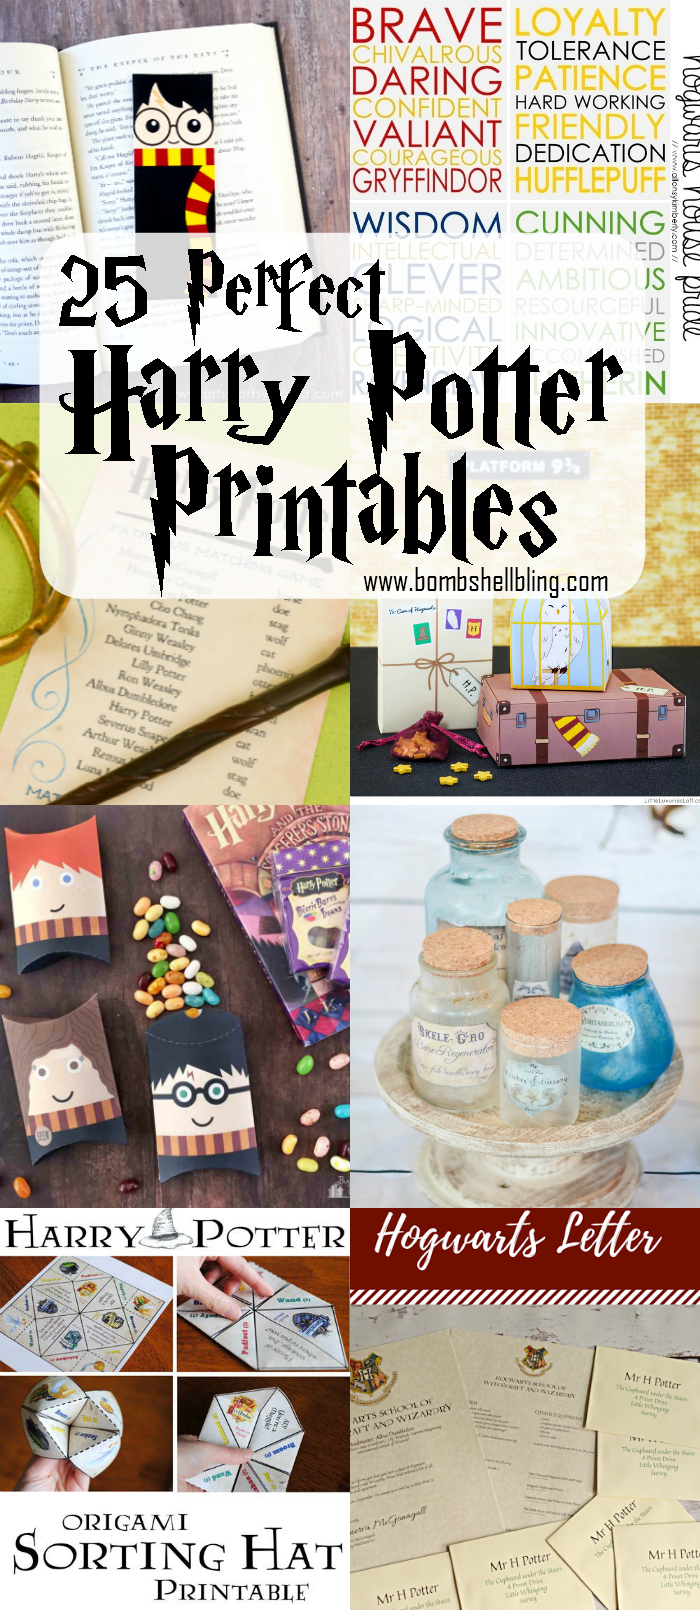 photograph about Harry Potter Potion Book Printable referred to as 25 Excellent Harry Potter Printables - Gathered by means of Bombs